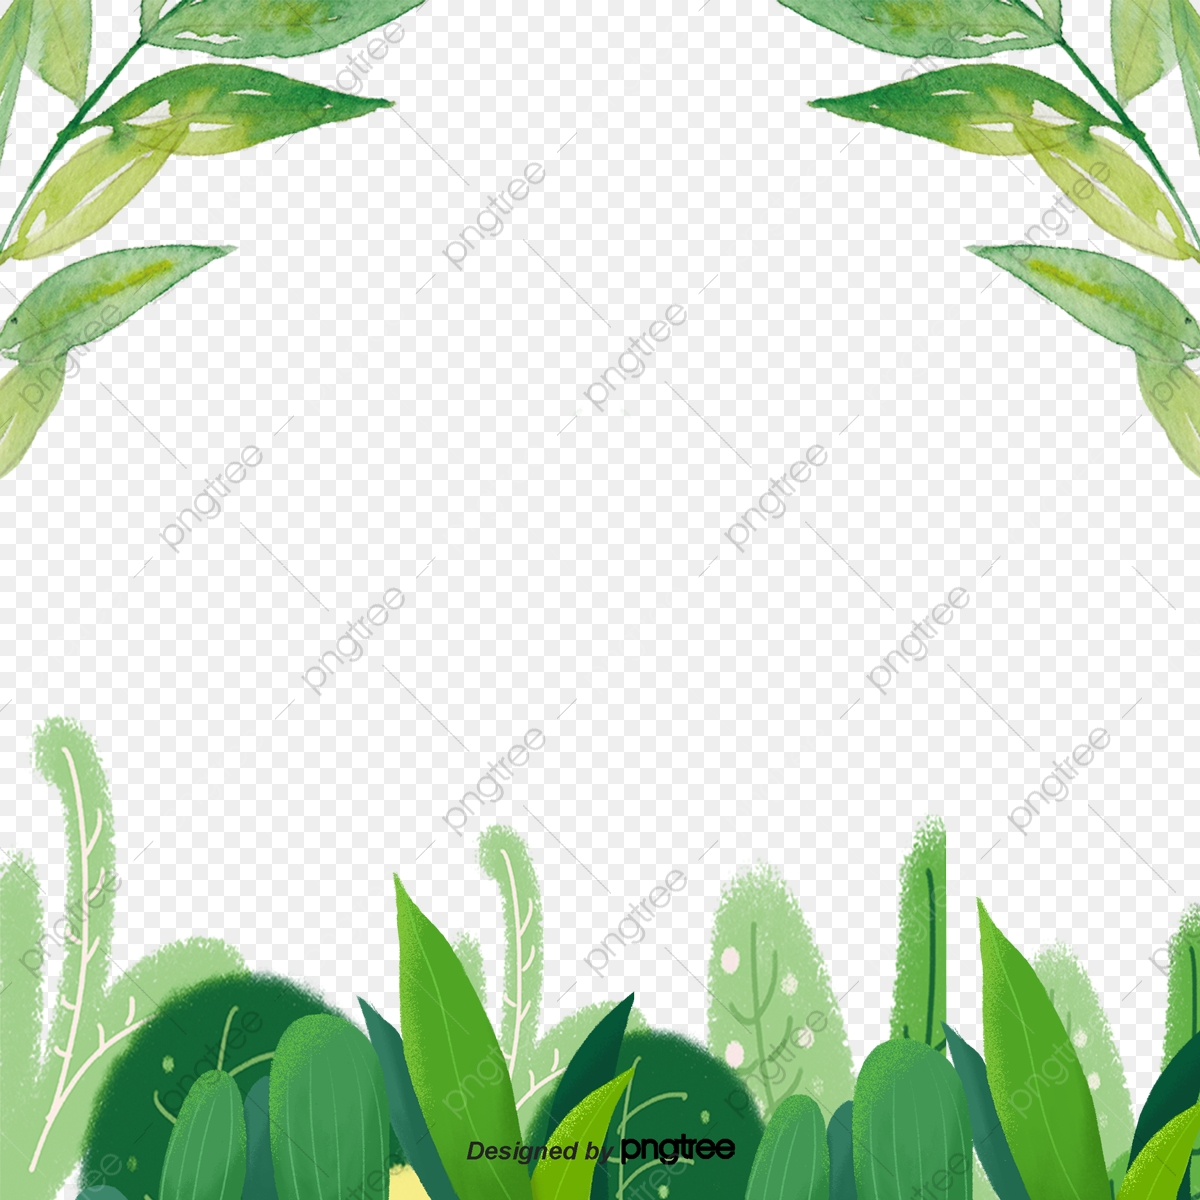 green flower and grass leaf decorative border cartoon plant ornament png transparent clipart image and psd file for free download https pngtree com freepng green flower and grass leaf decorative border 4280616 html